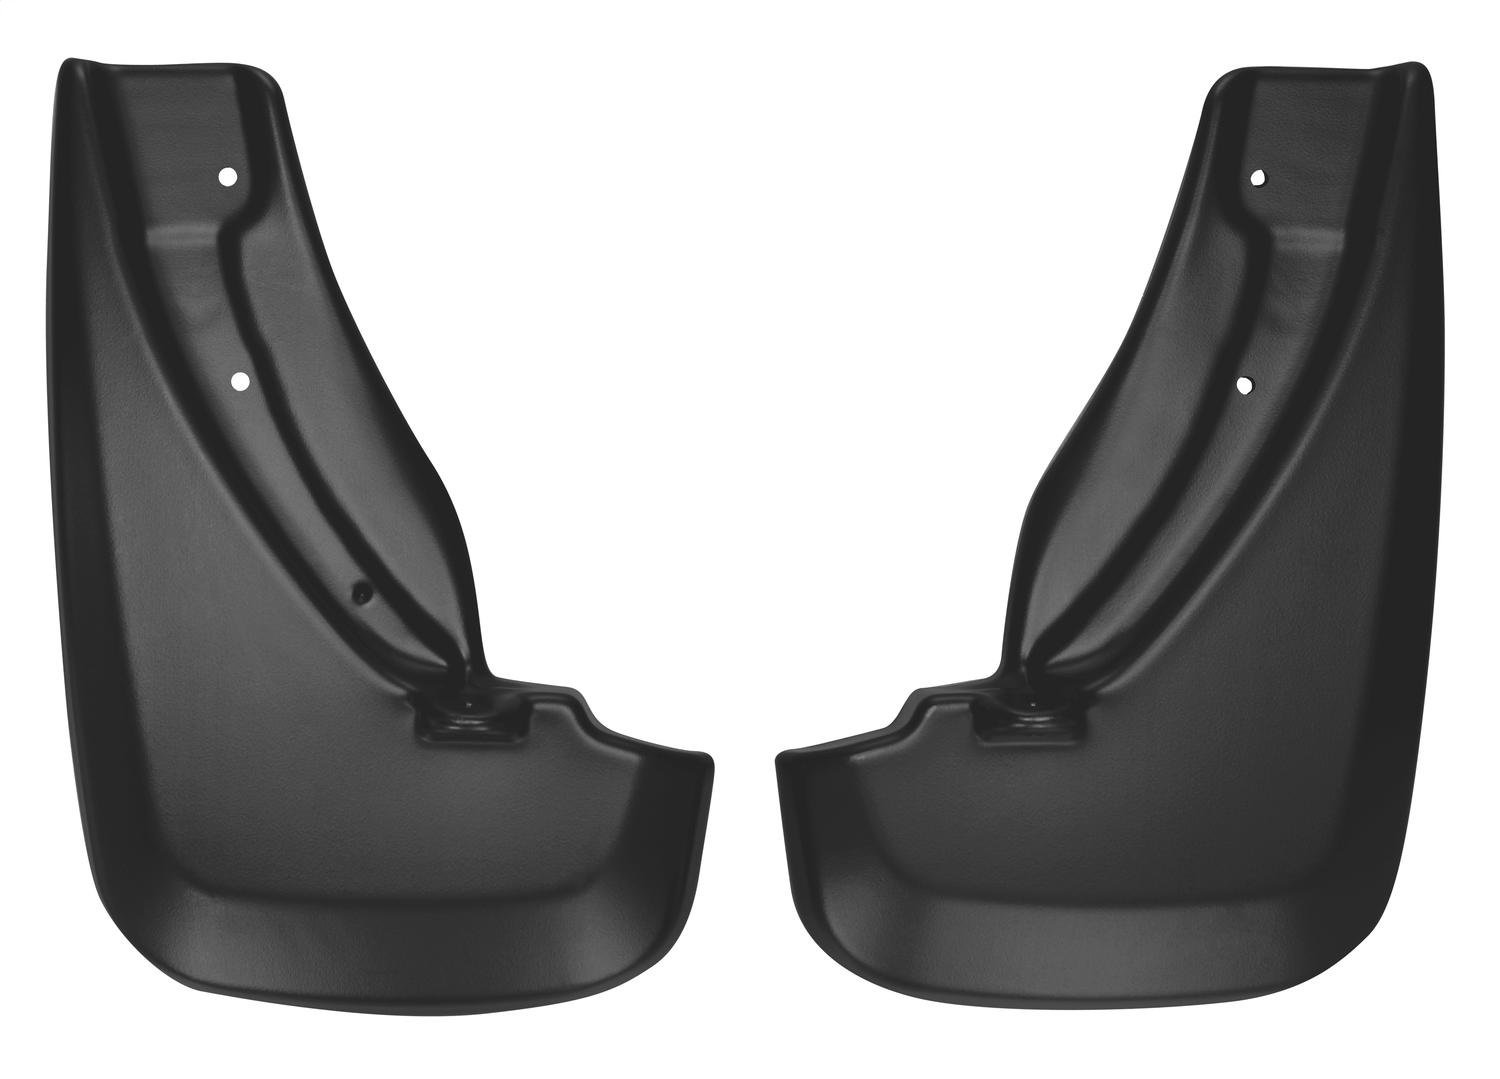 Husky Liners Rear Mud Guards Fits 11-18 Grand Cherokee Laredo/Limited/Overland 59101